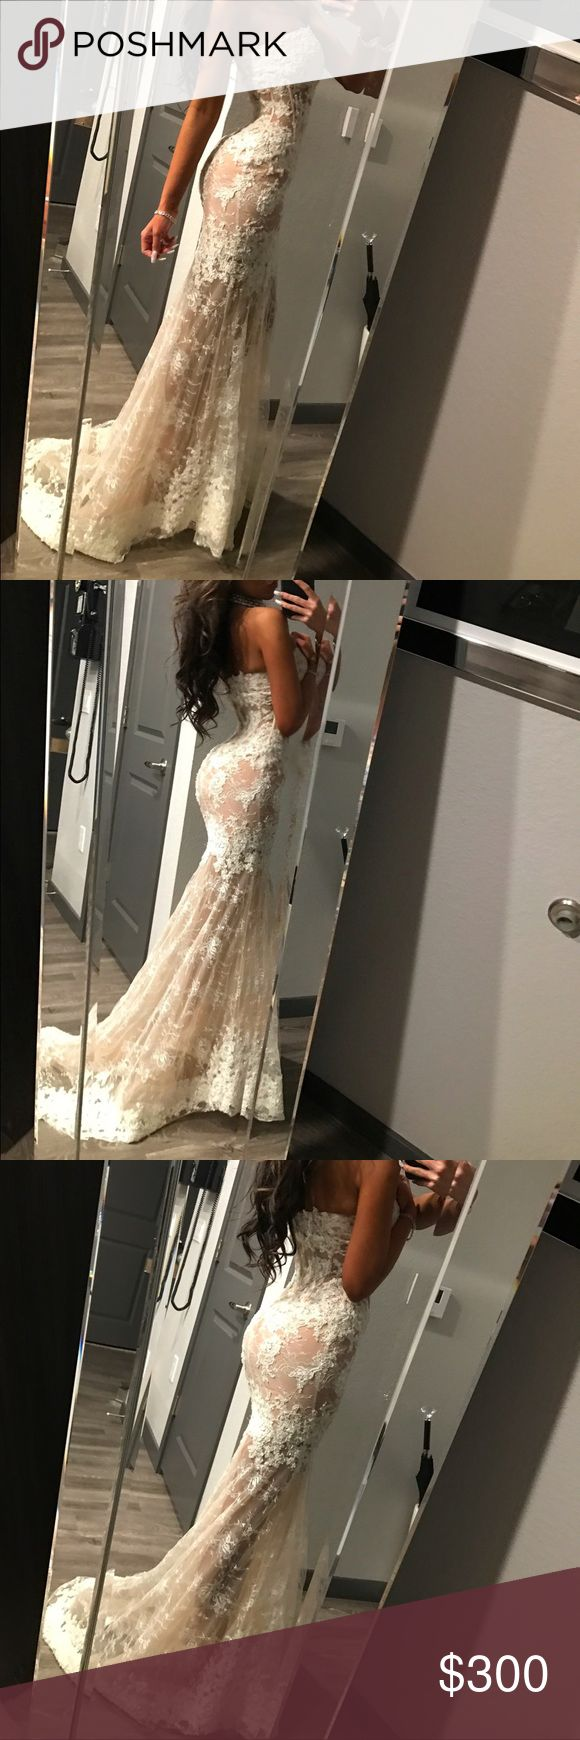 sherri hill white and nude lace sherri hill white lace and nude worn once could be worn as a wedding dress or a reception Sherri Hill Dresses